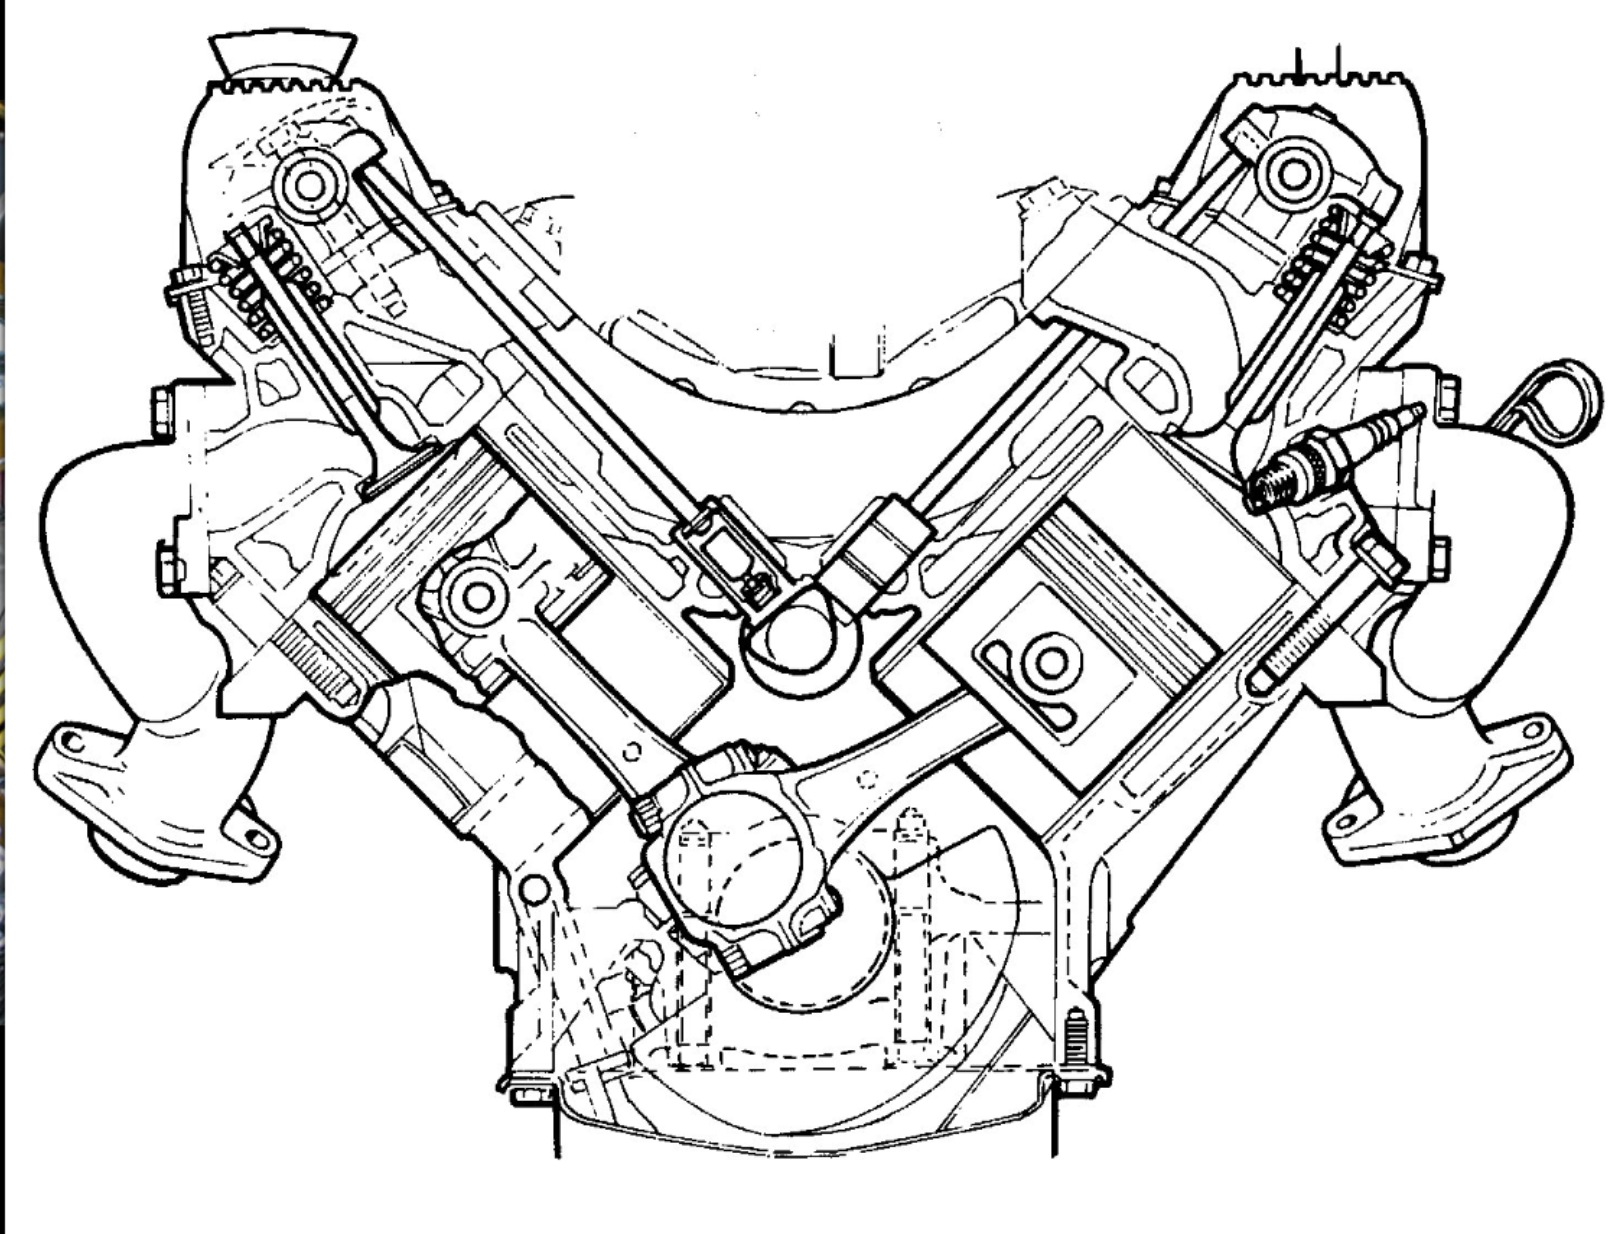 1624x1234 A Sectional View Of The Rover V8 Engine. A Masterpiece Of Design